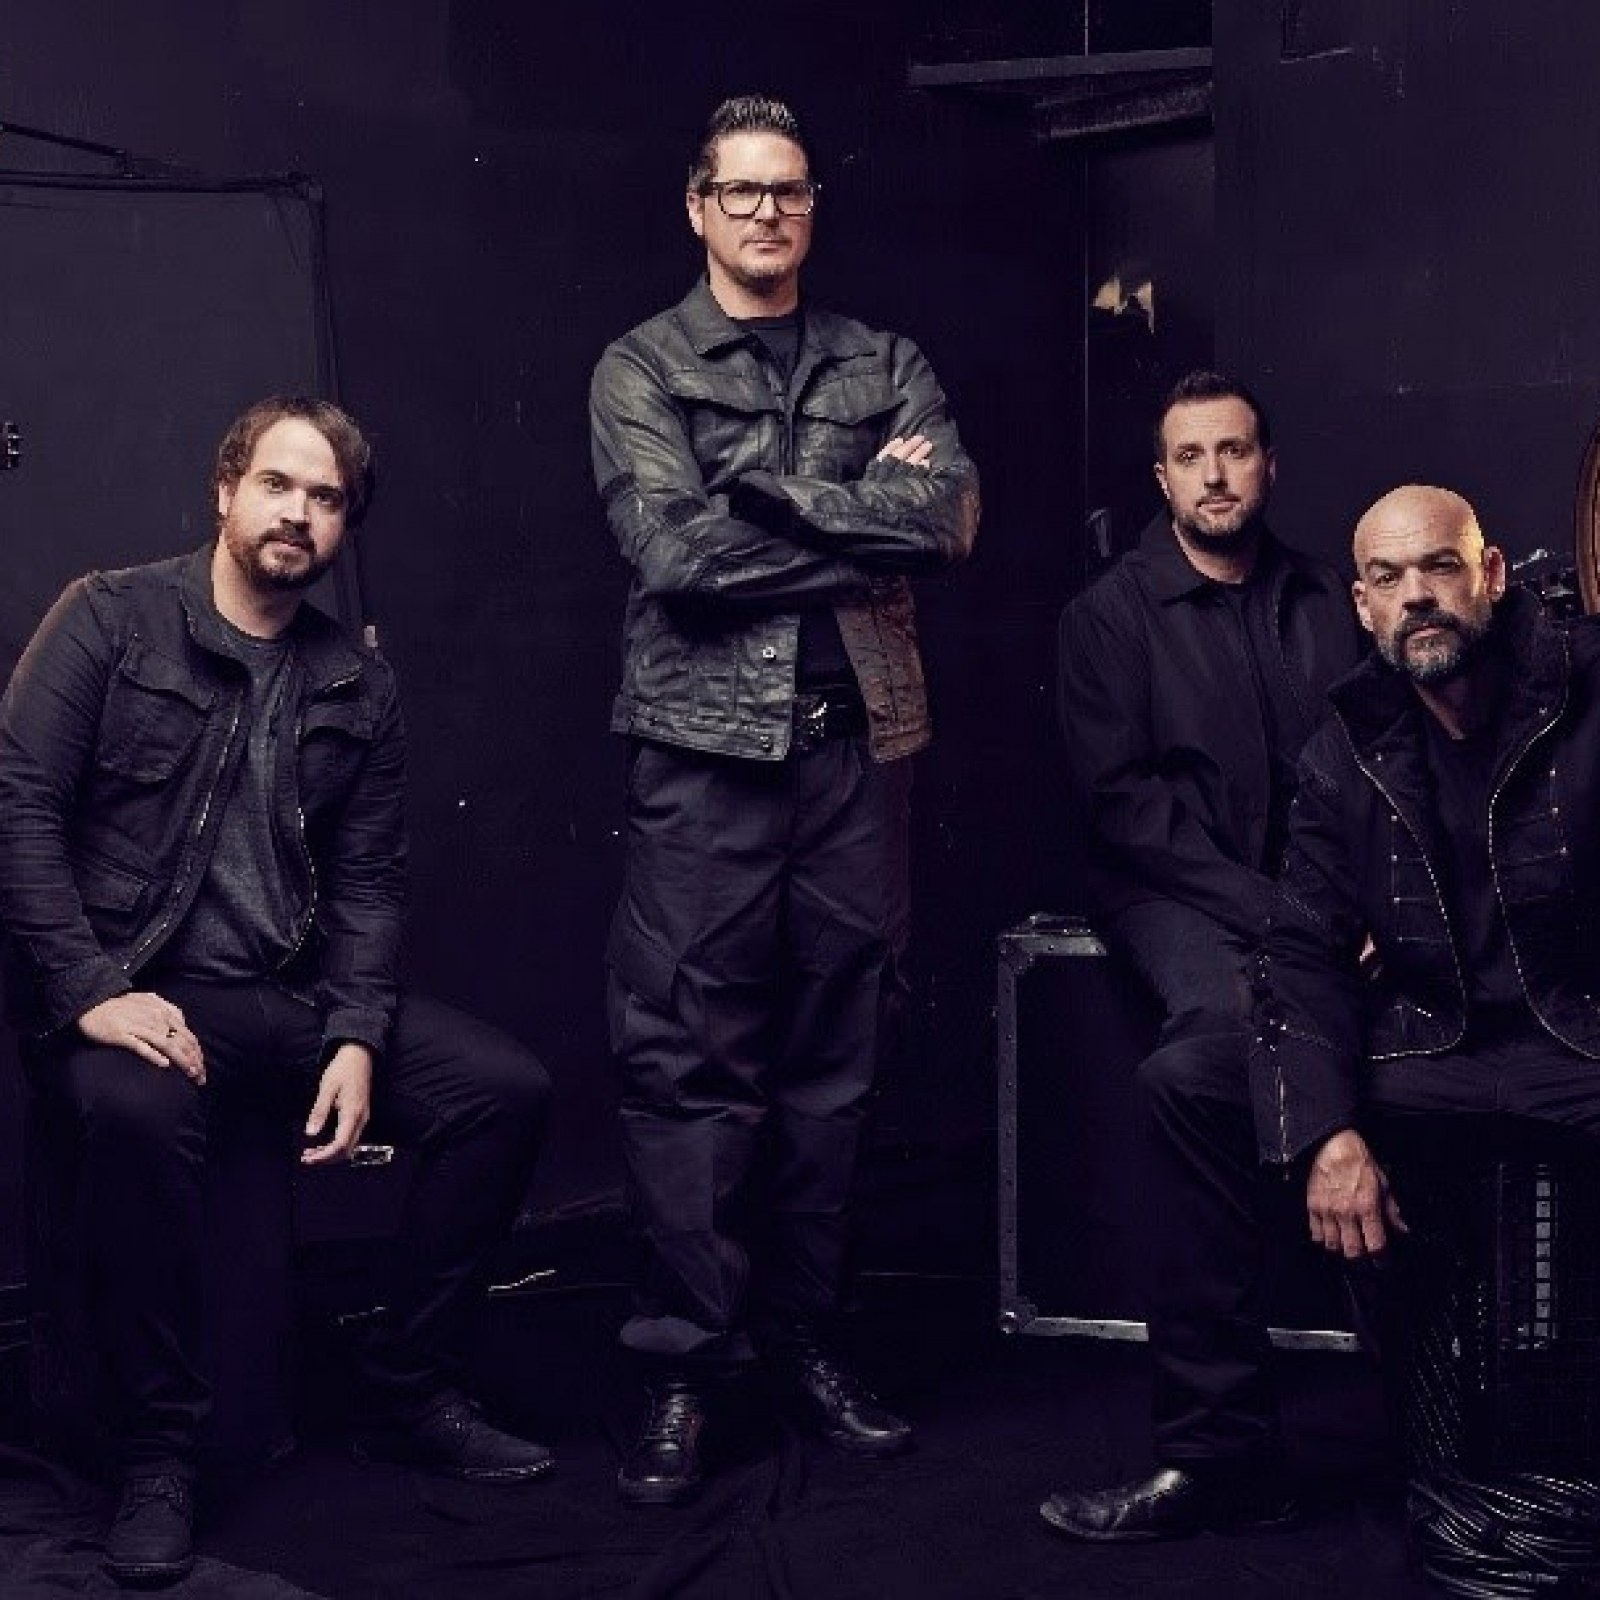 Watch Ghost Adventures Halloween 2020 Ghost Adventures' Crew to Investigate Real Conjuring House In 2019